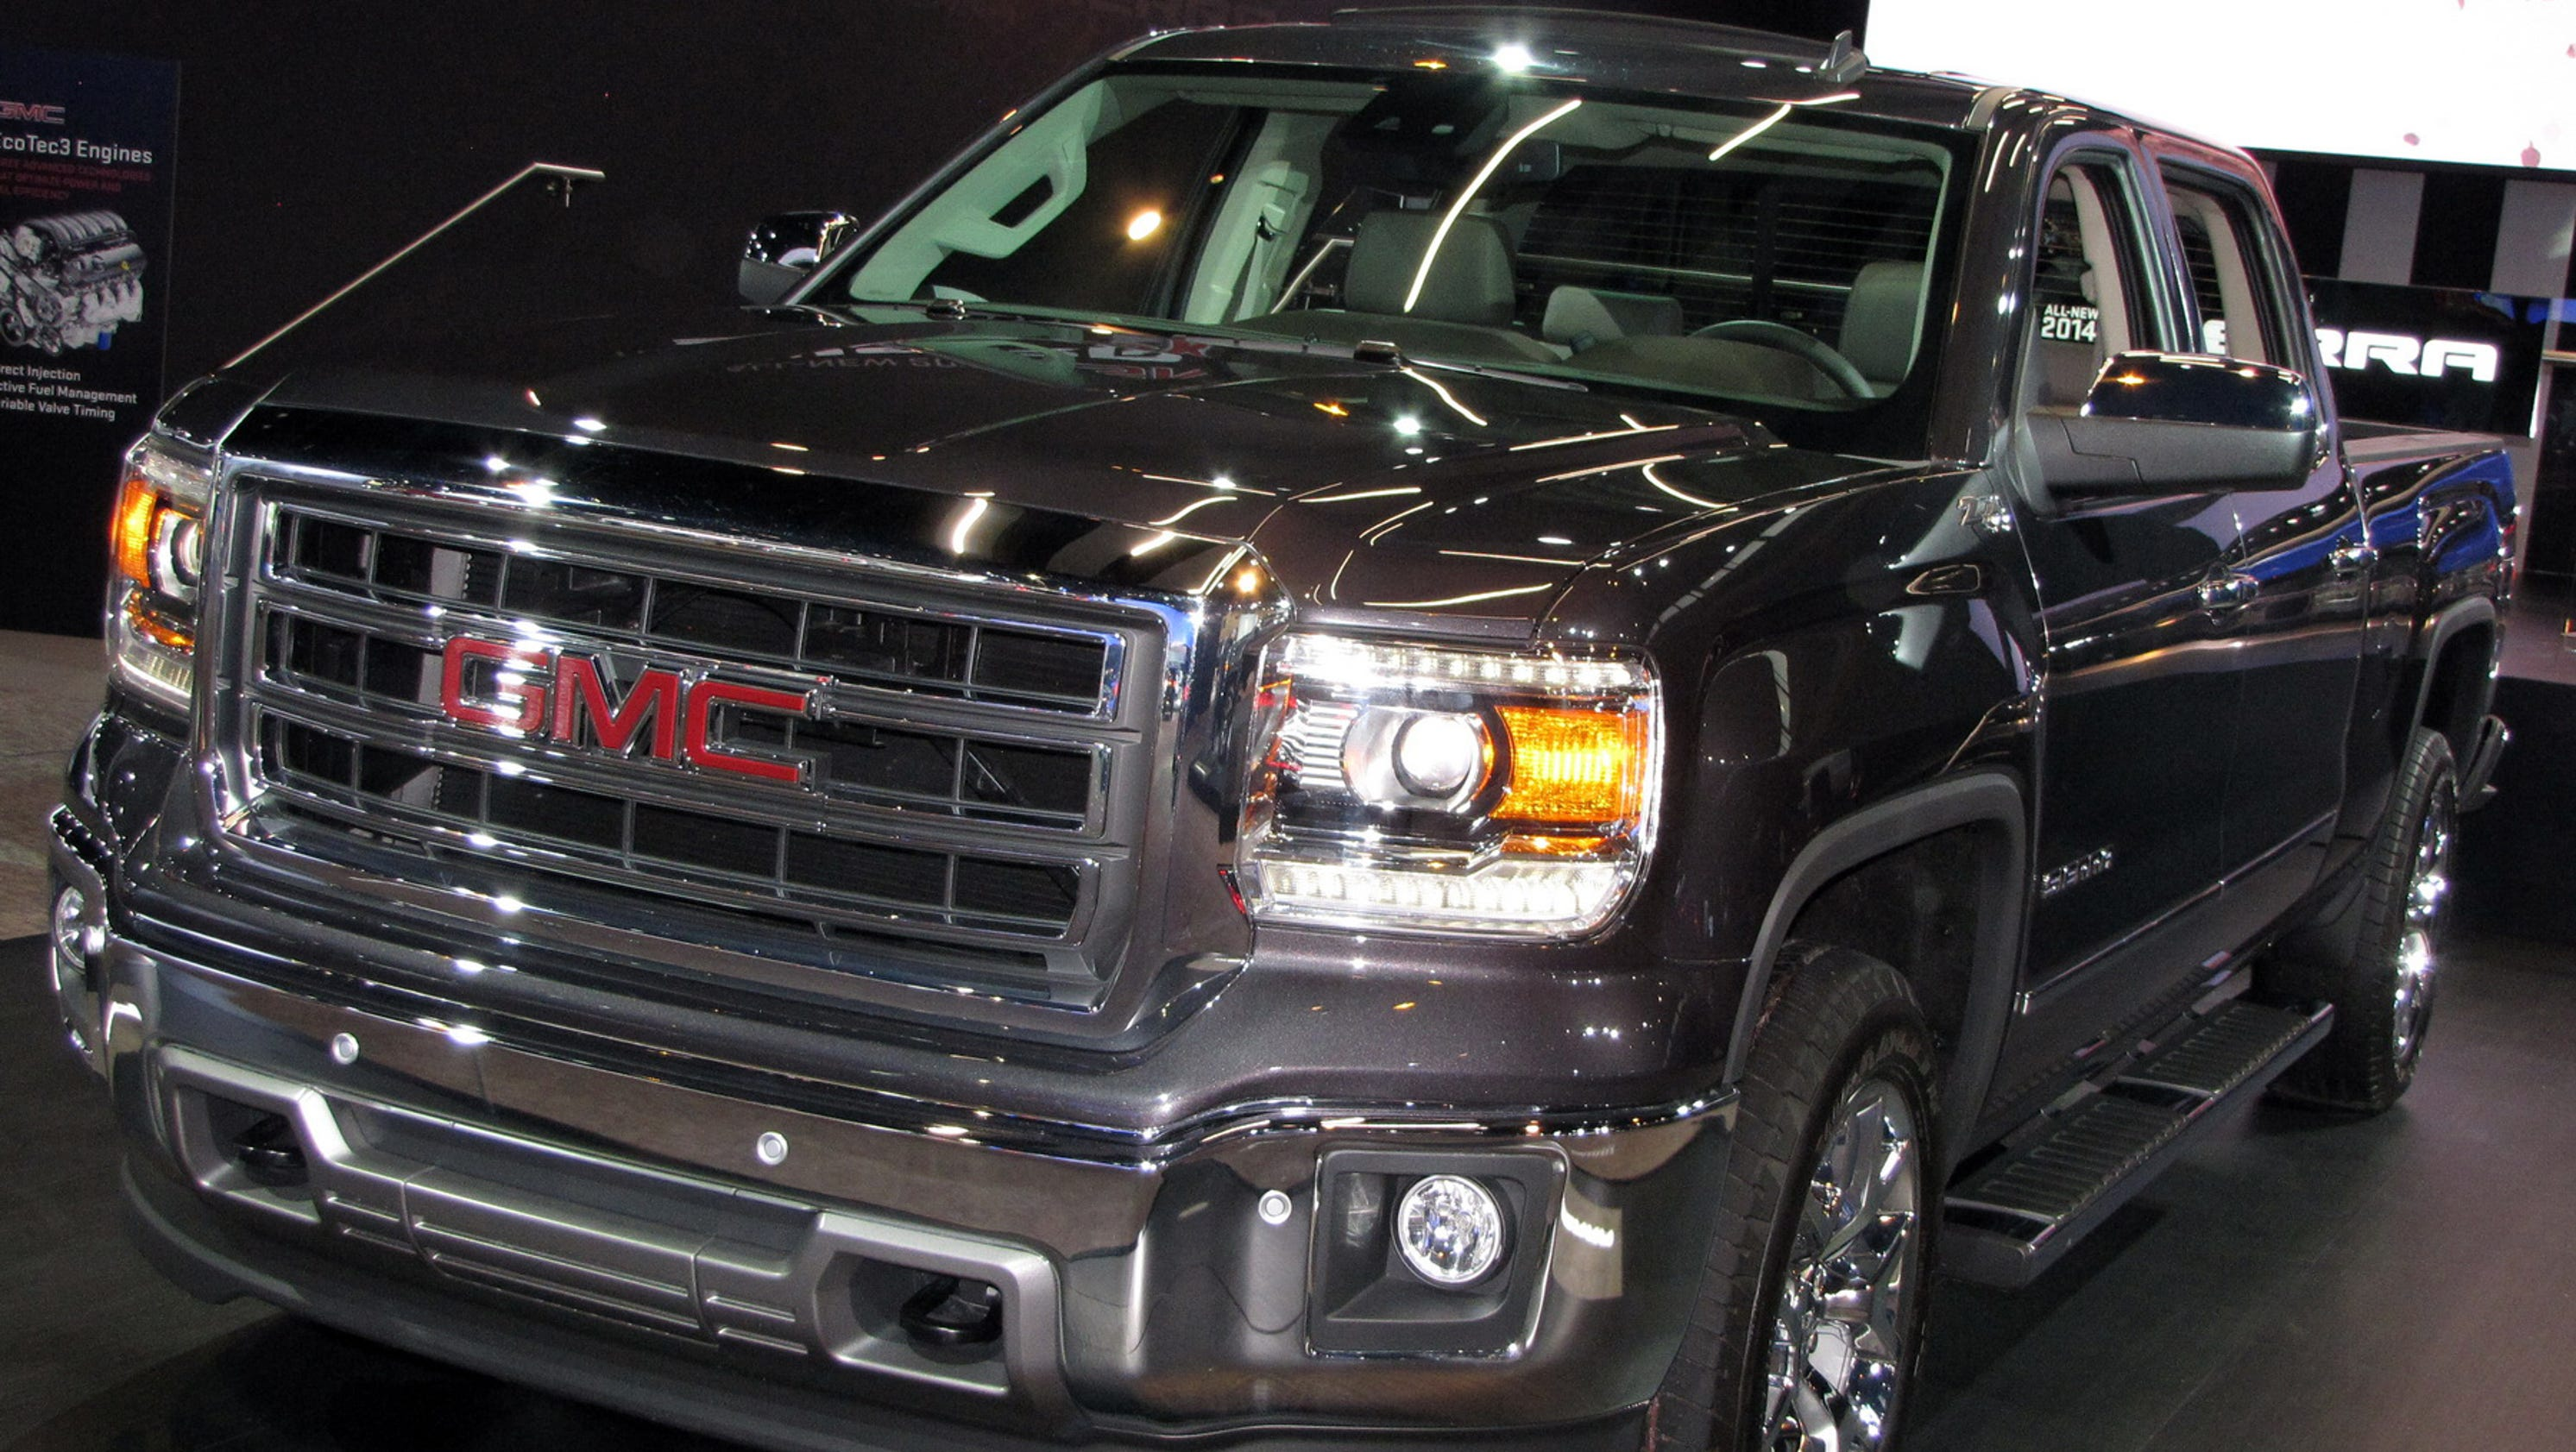 arriving gmc isuzu trucks img inventory ct is new ma every sale milford for dealer day international